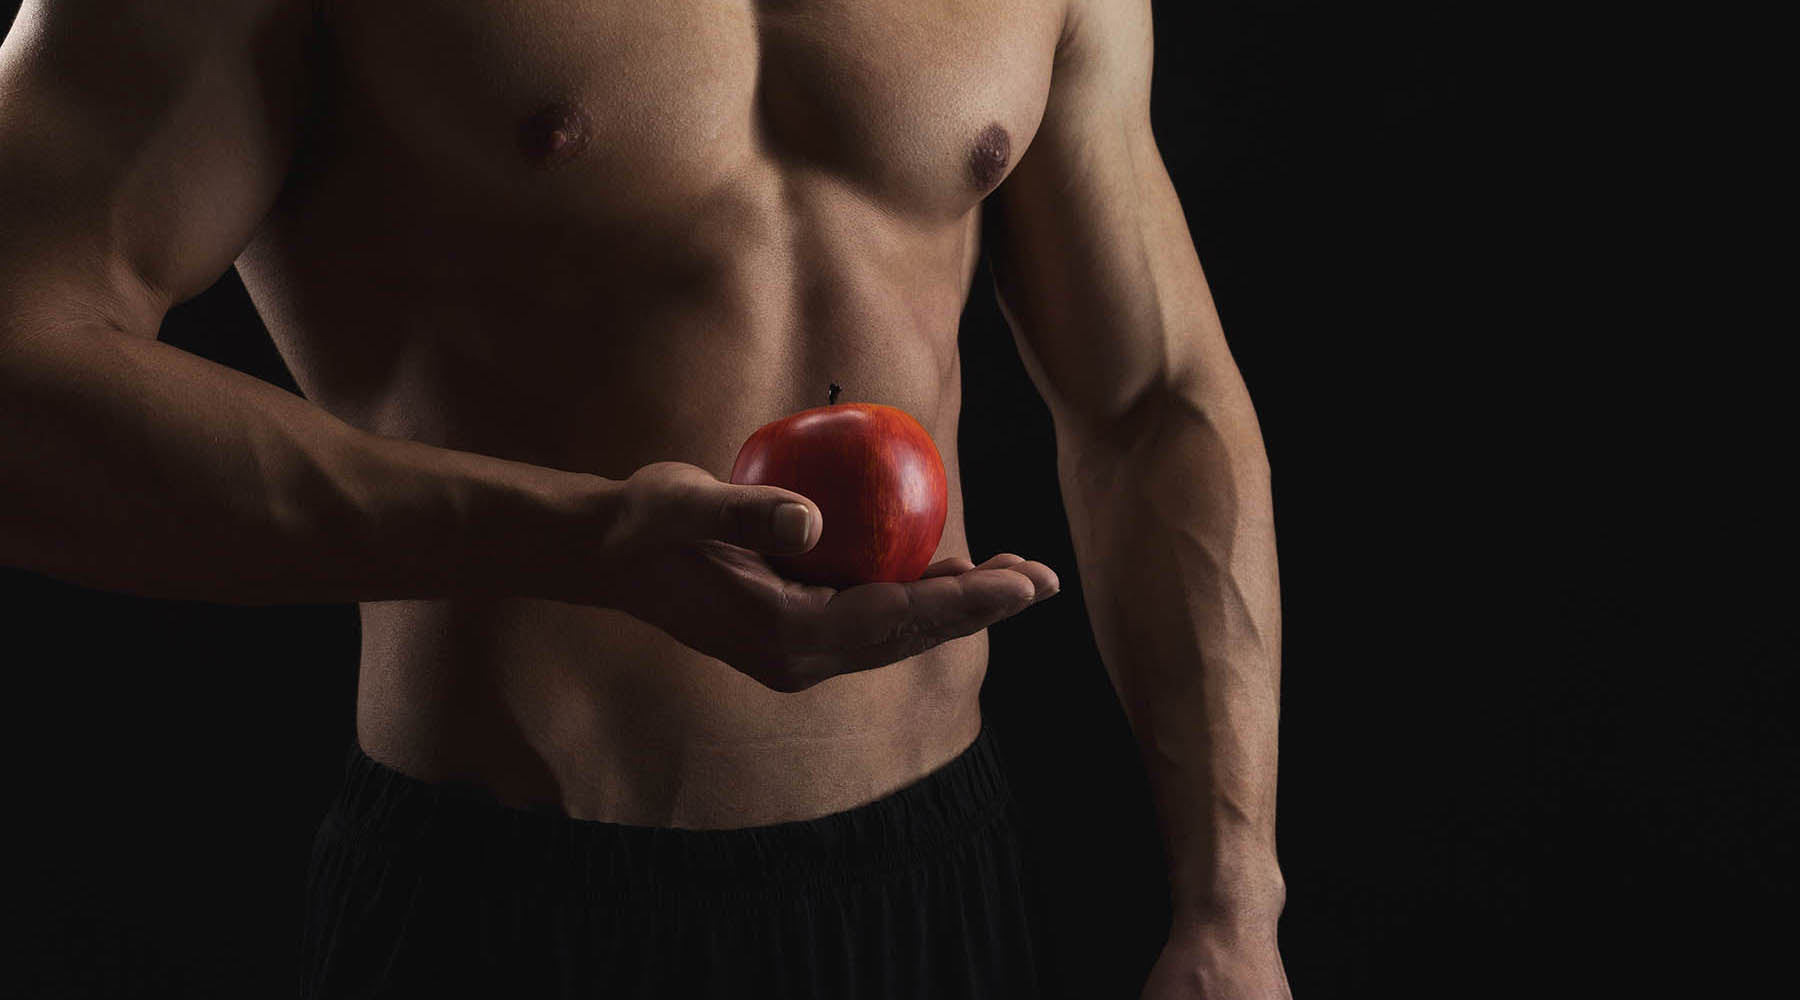 Healthy man's bare torso holding an apple in his right hand